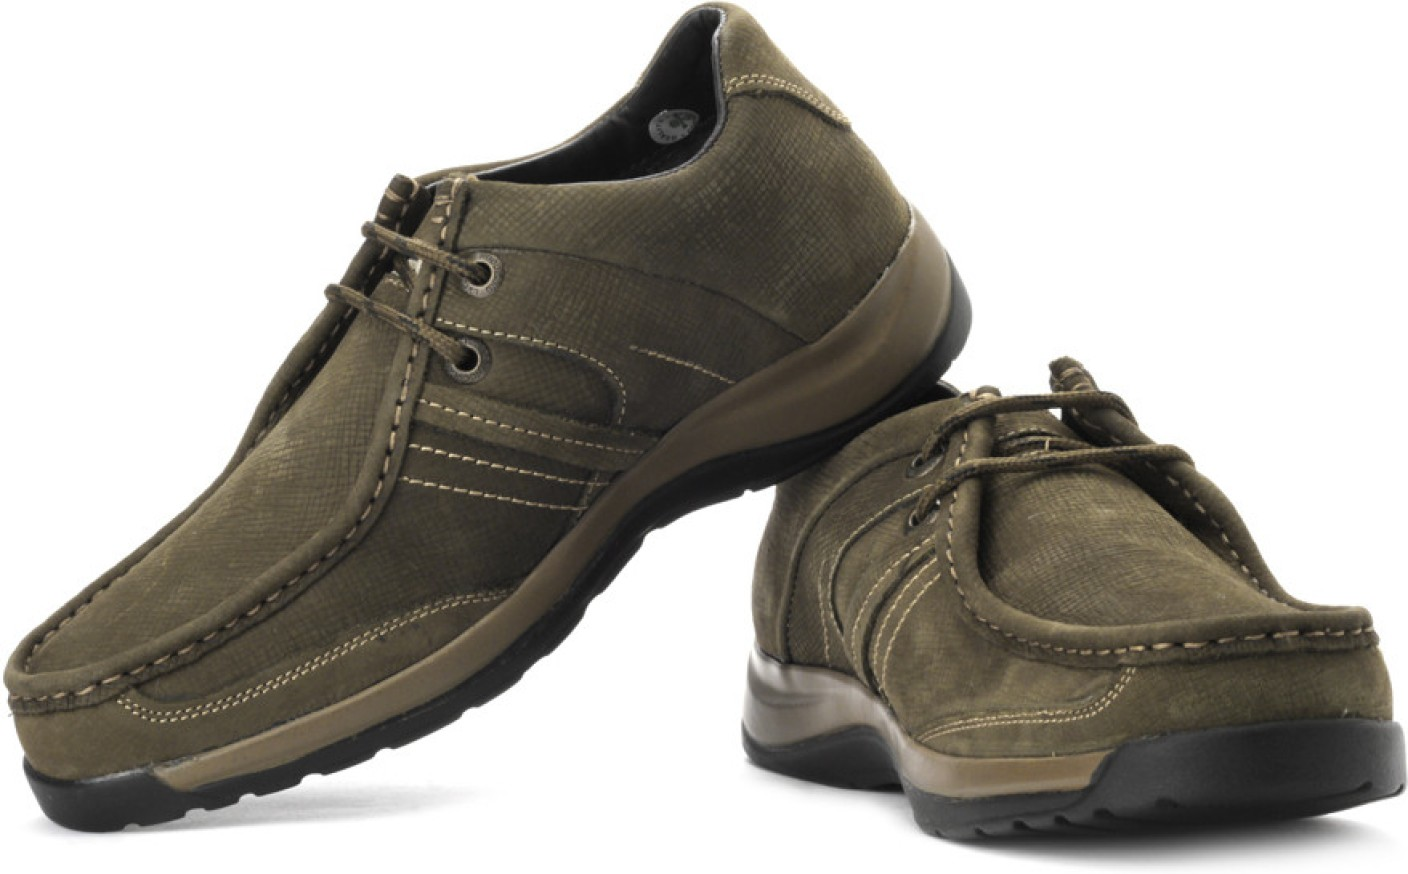 Woodland Outdoor Shoes For Men - Buy Olive Green Color ...